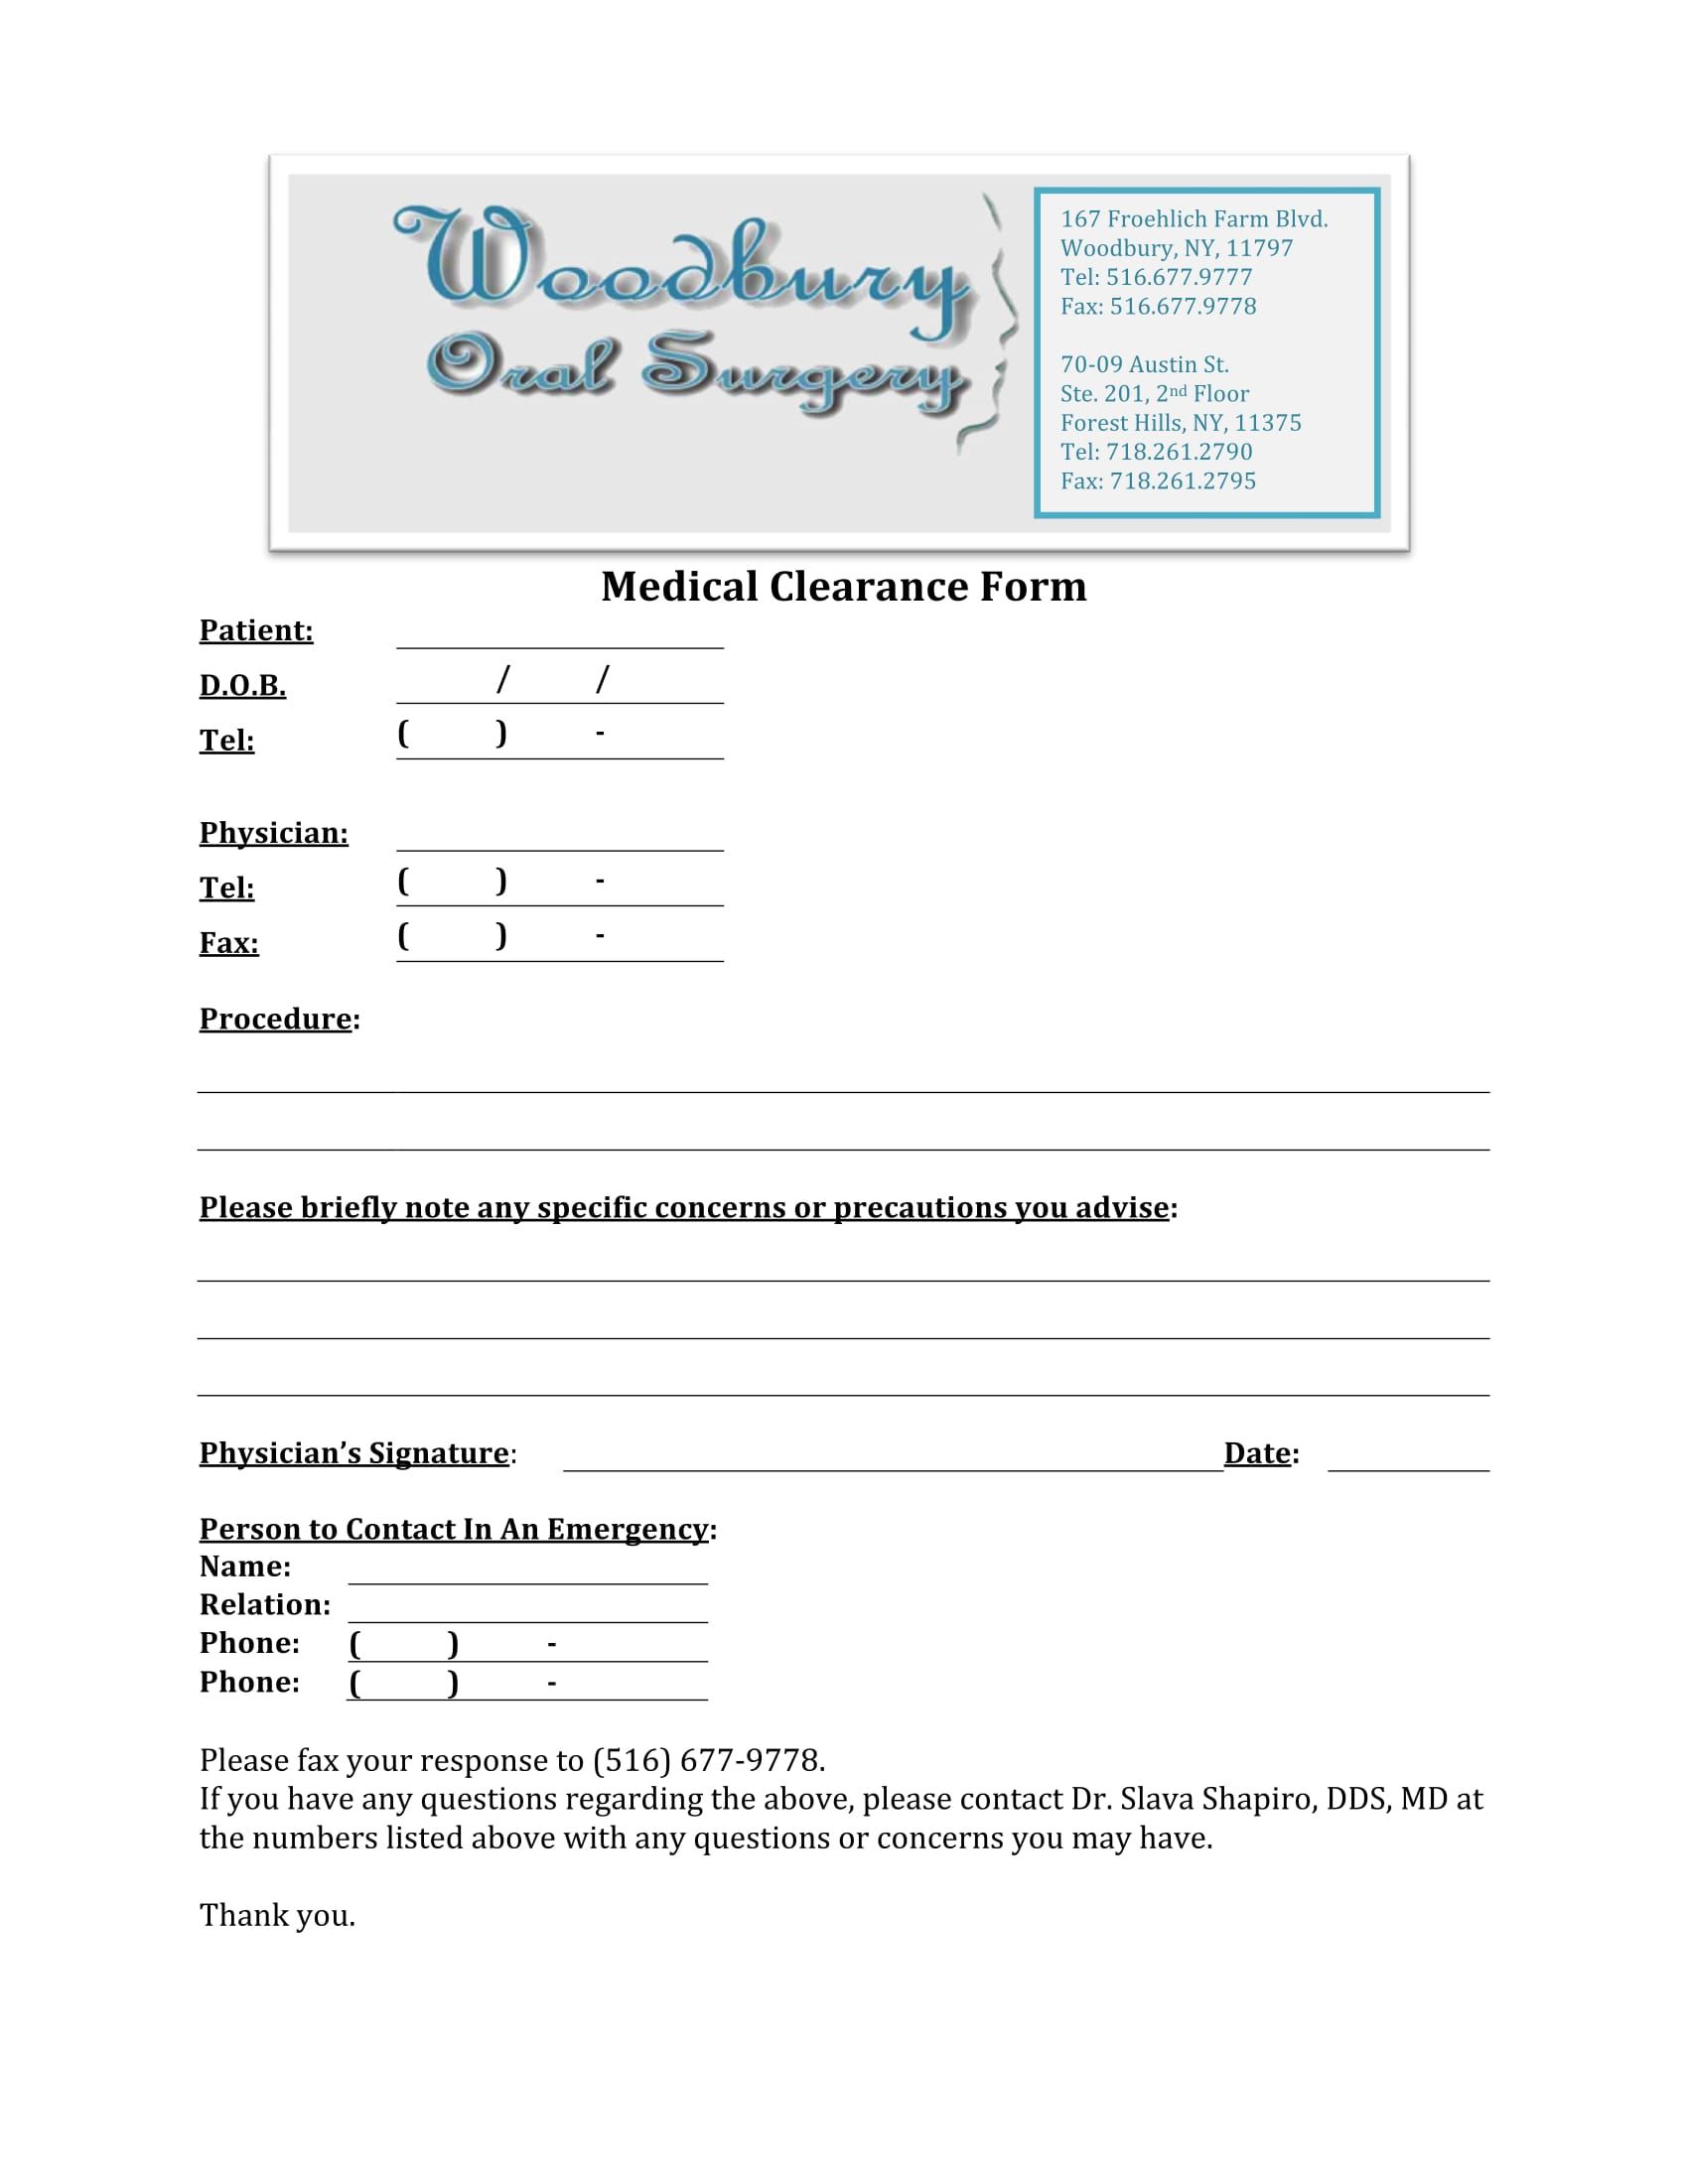 oral surgery medical clearance form 1